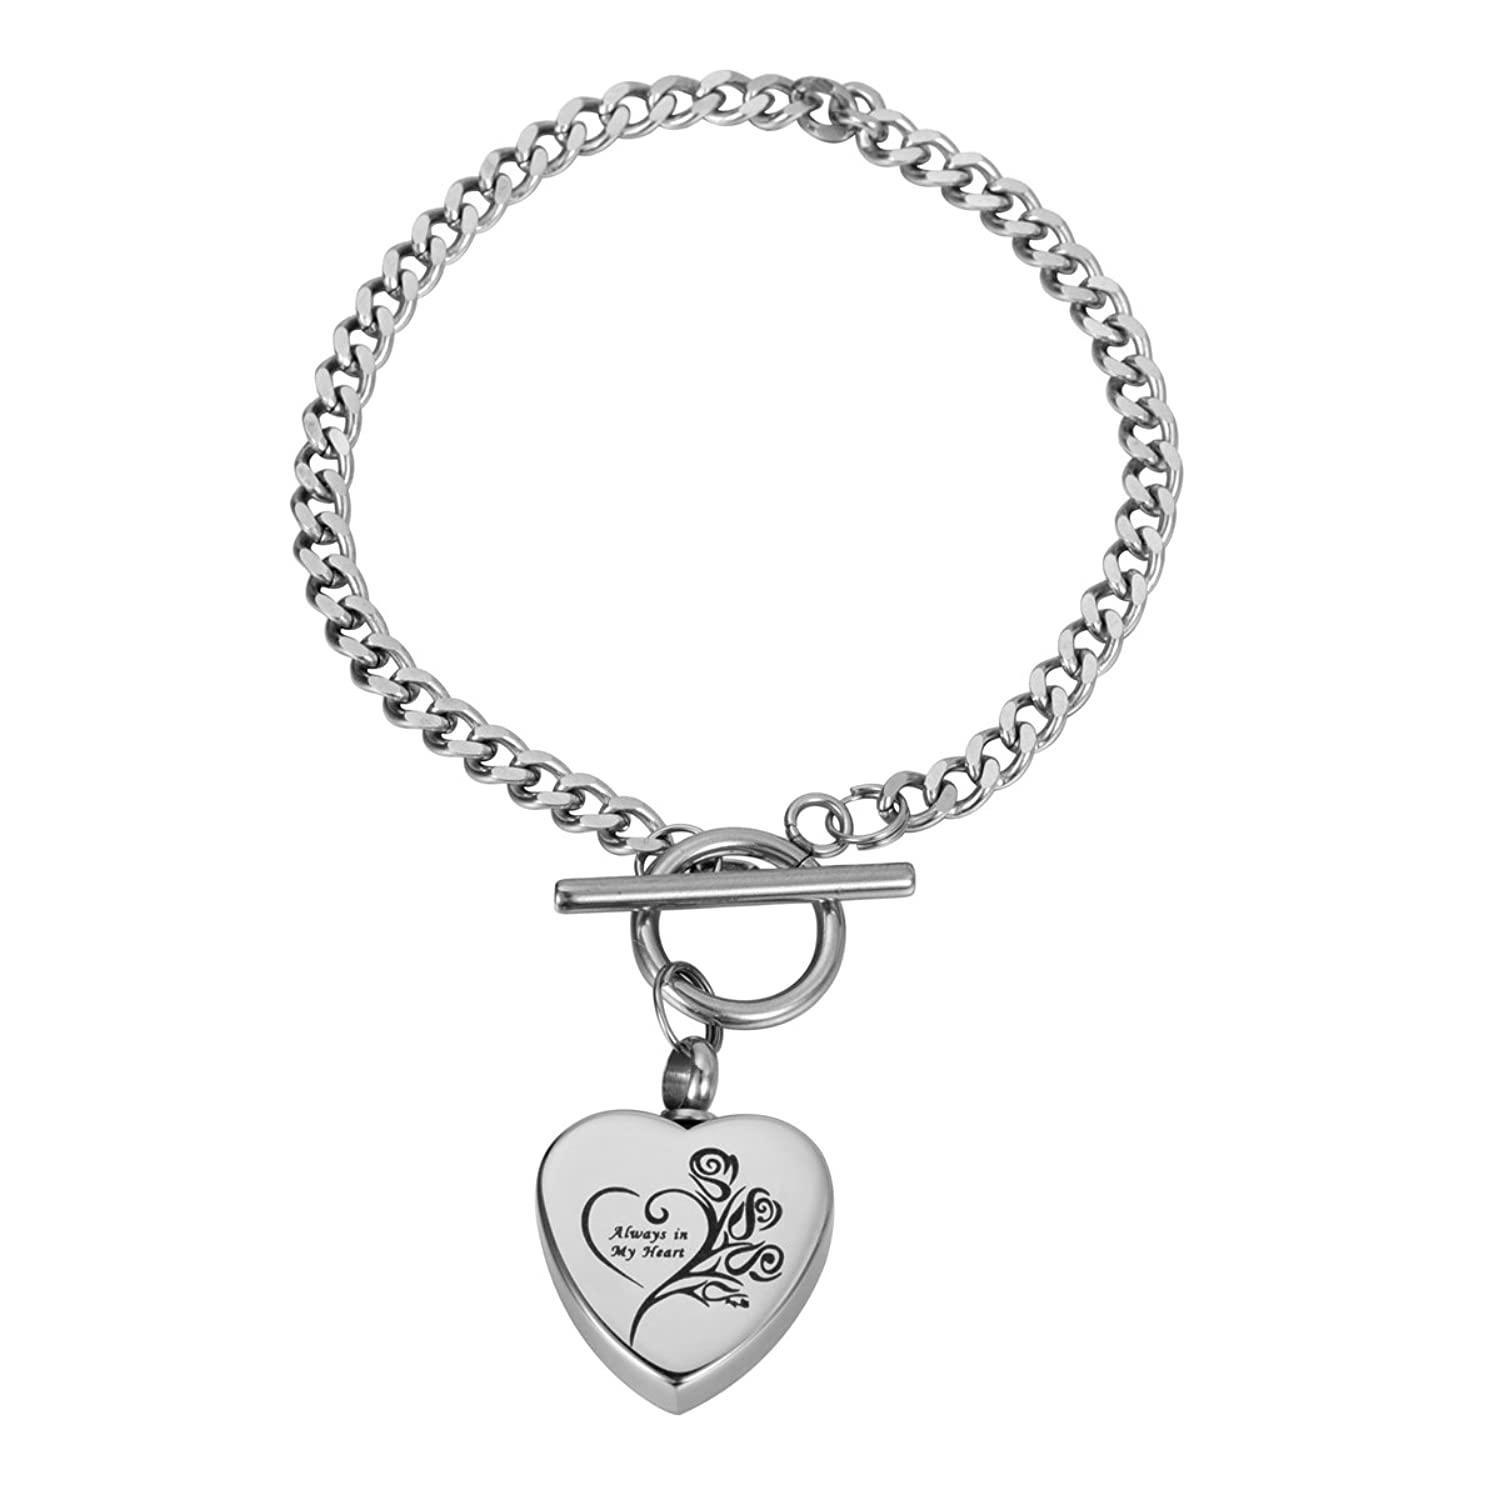 Valyria Stainless Steel Bracelet Always in My Heart Urn Keepsake Cremation Ashes Charm Bracelets oYr90